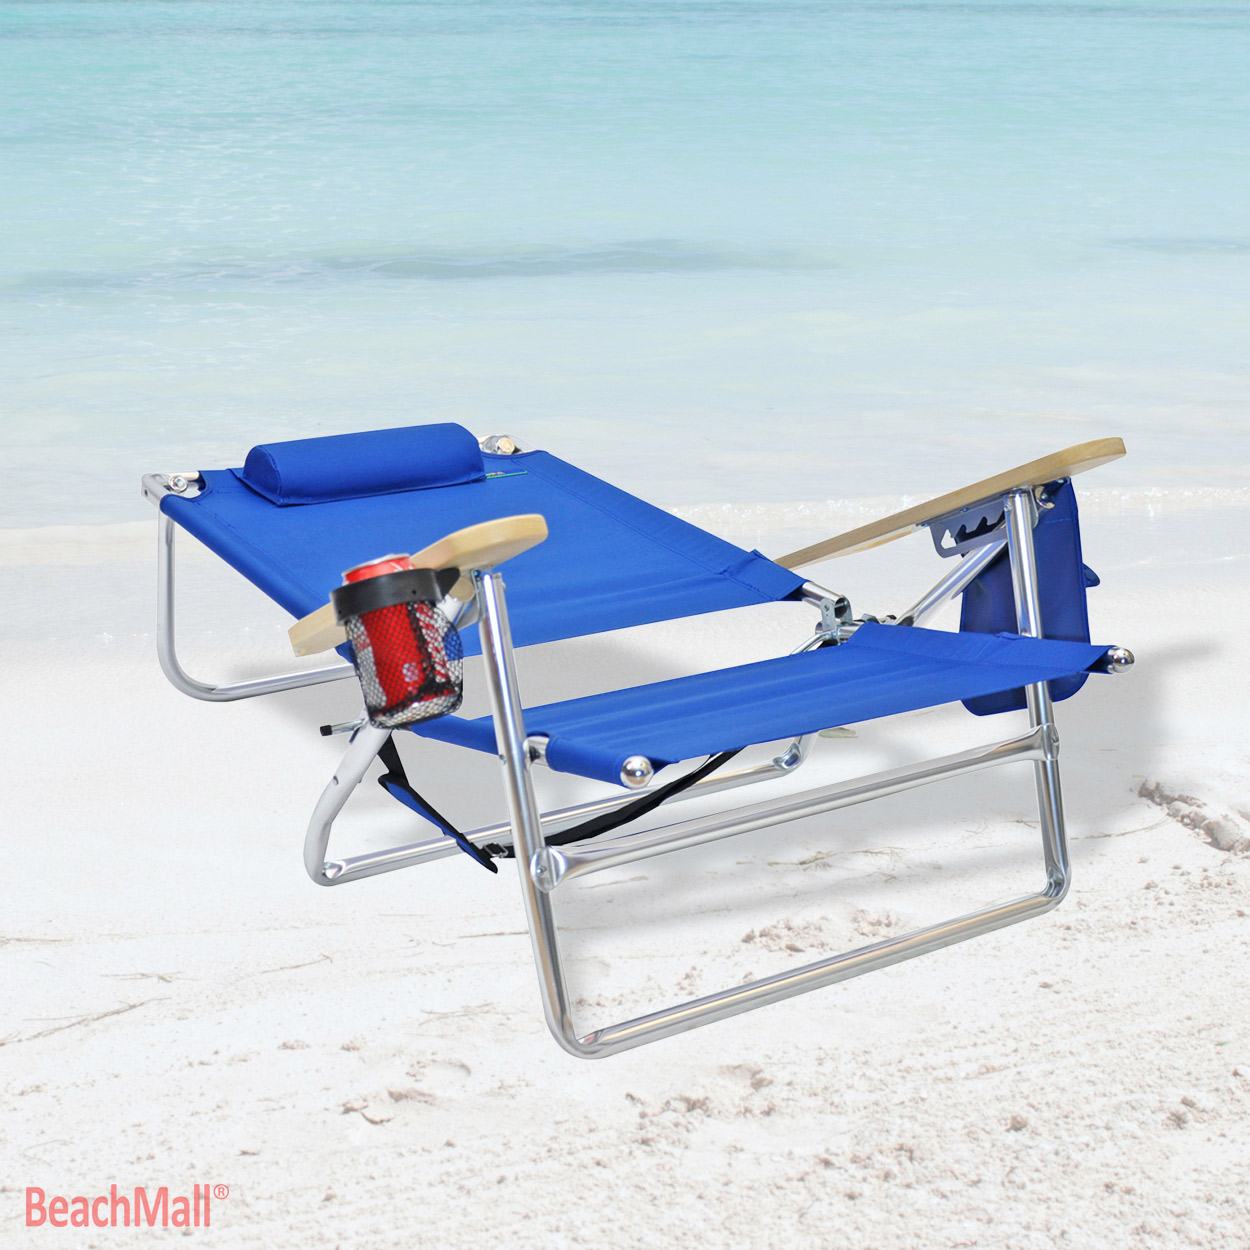 camping chairs big 5 barrel back chair position heavy duty 300 lbs lay flat beach